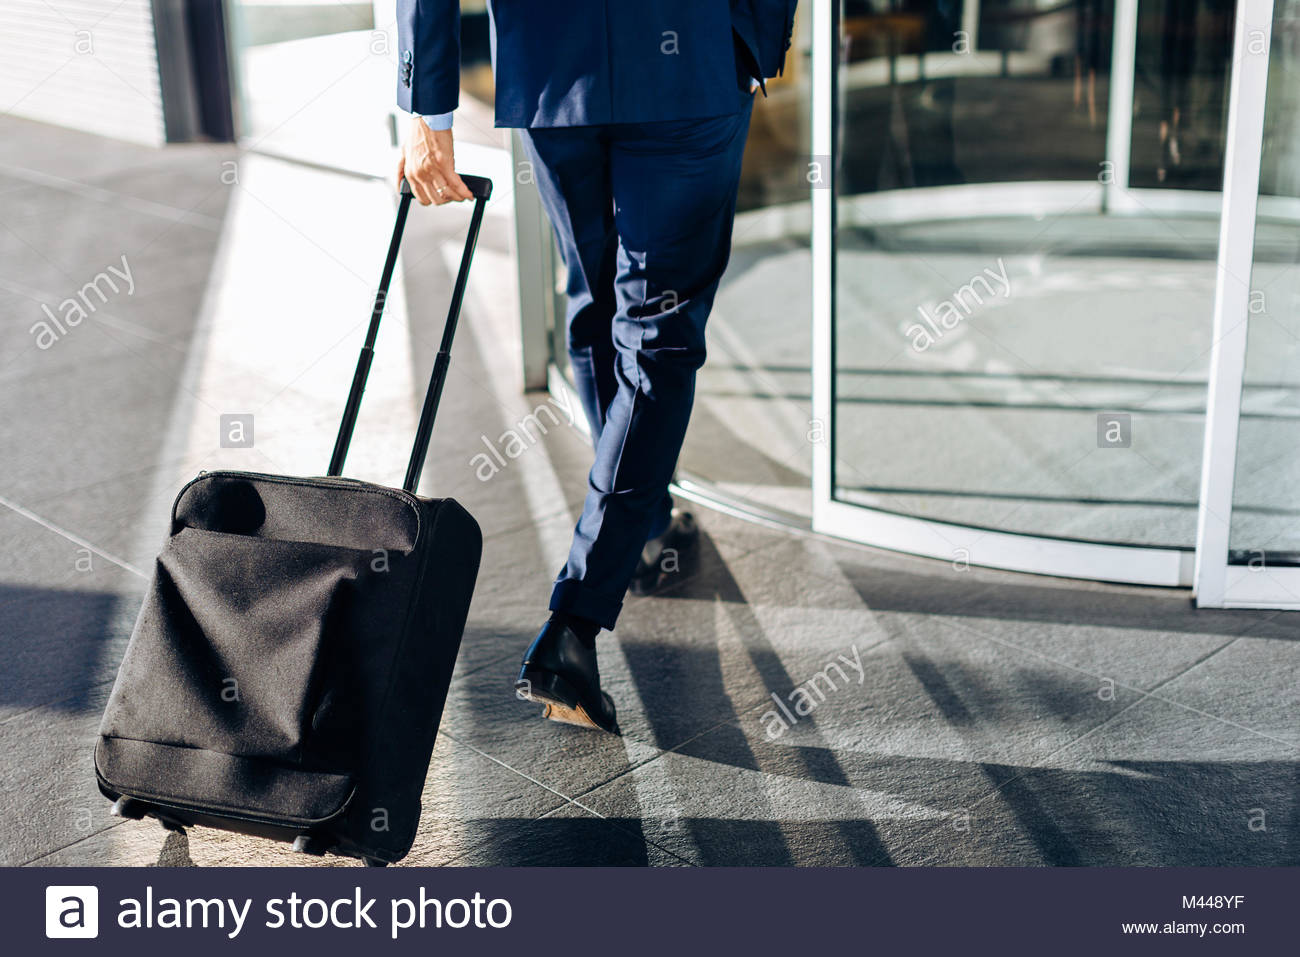 Businessman with wheeled luggage entering revolving doors of building - Stock Image